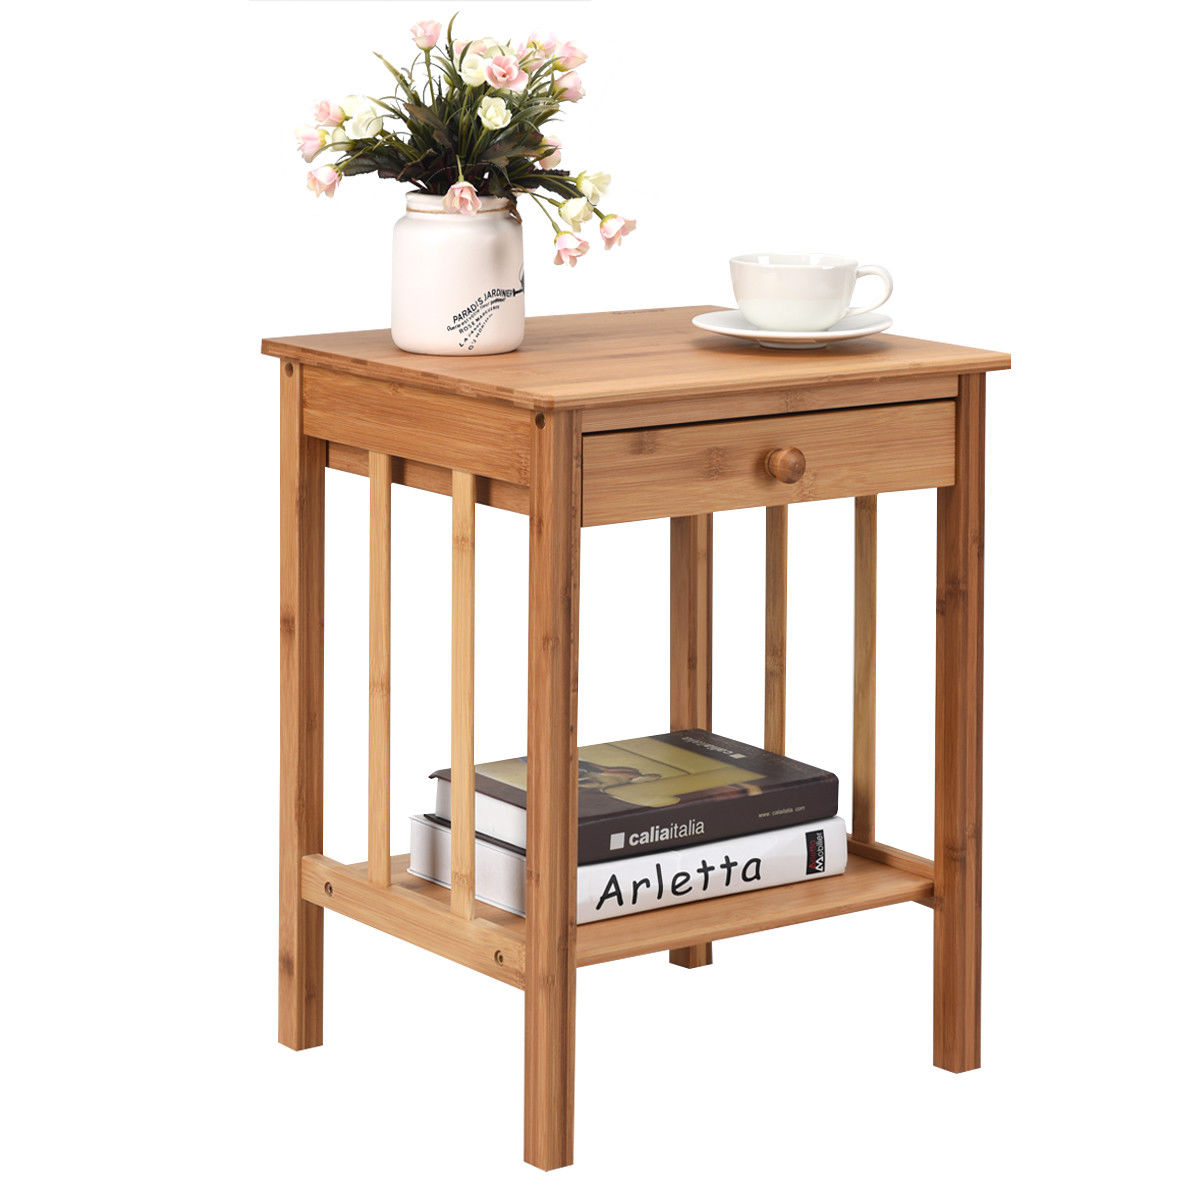 way bamboo nightstand end table drawer storage shelf outdoor side with multipurpose shallow hall accent stand metal glass top trestle dining room sets rod iron patio furniture